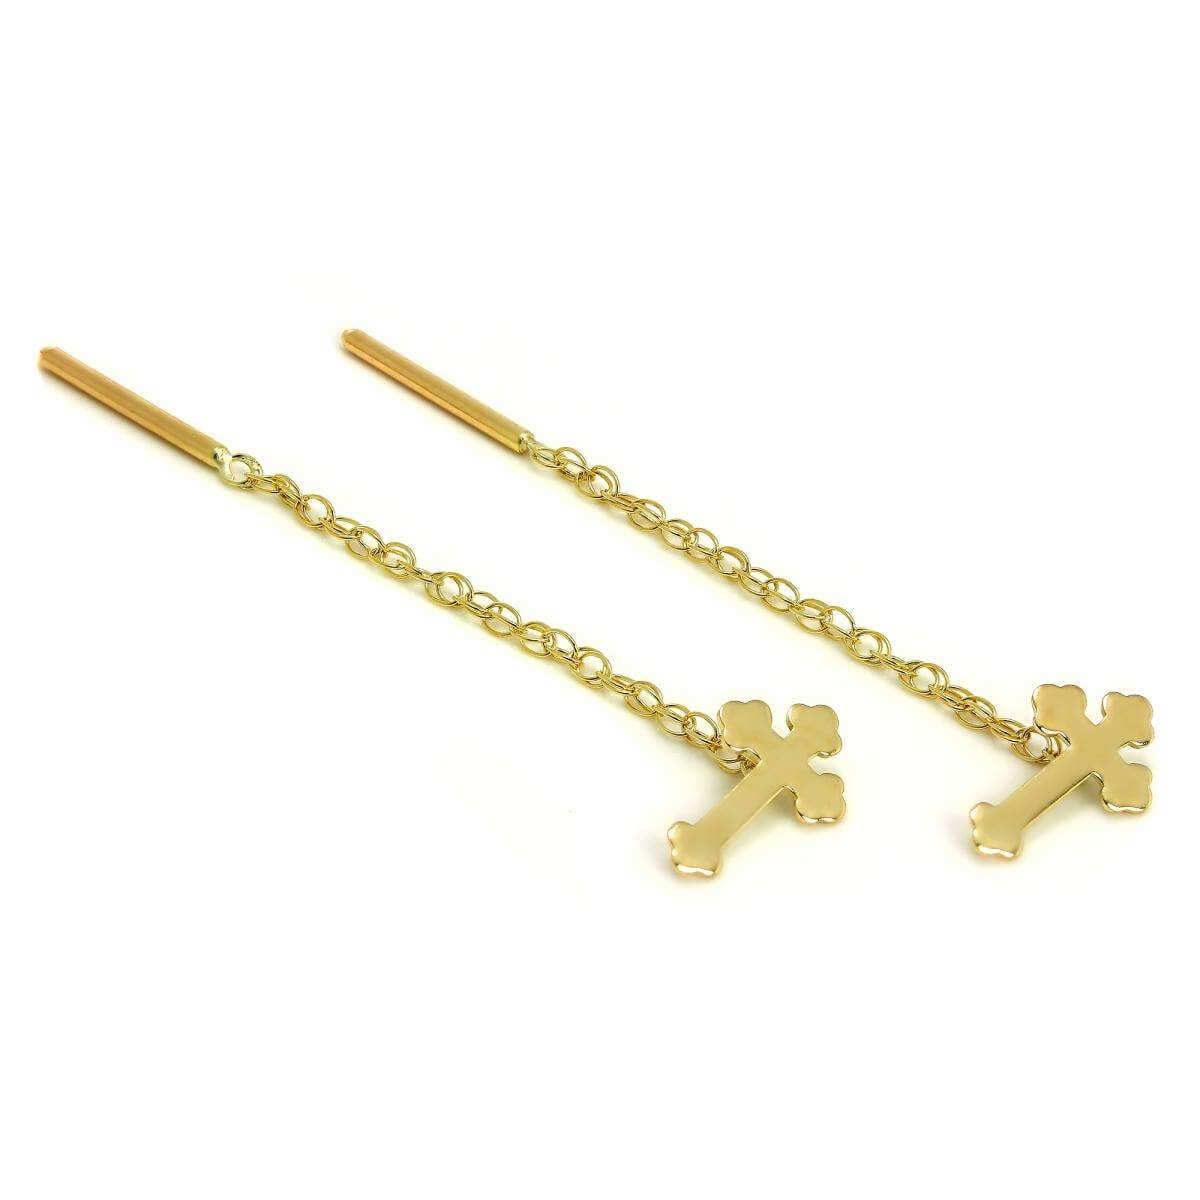 9ct Gold Cross And Chain Uk